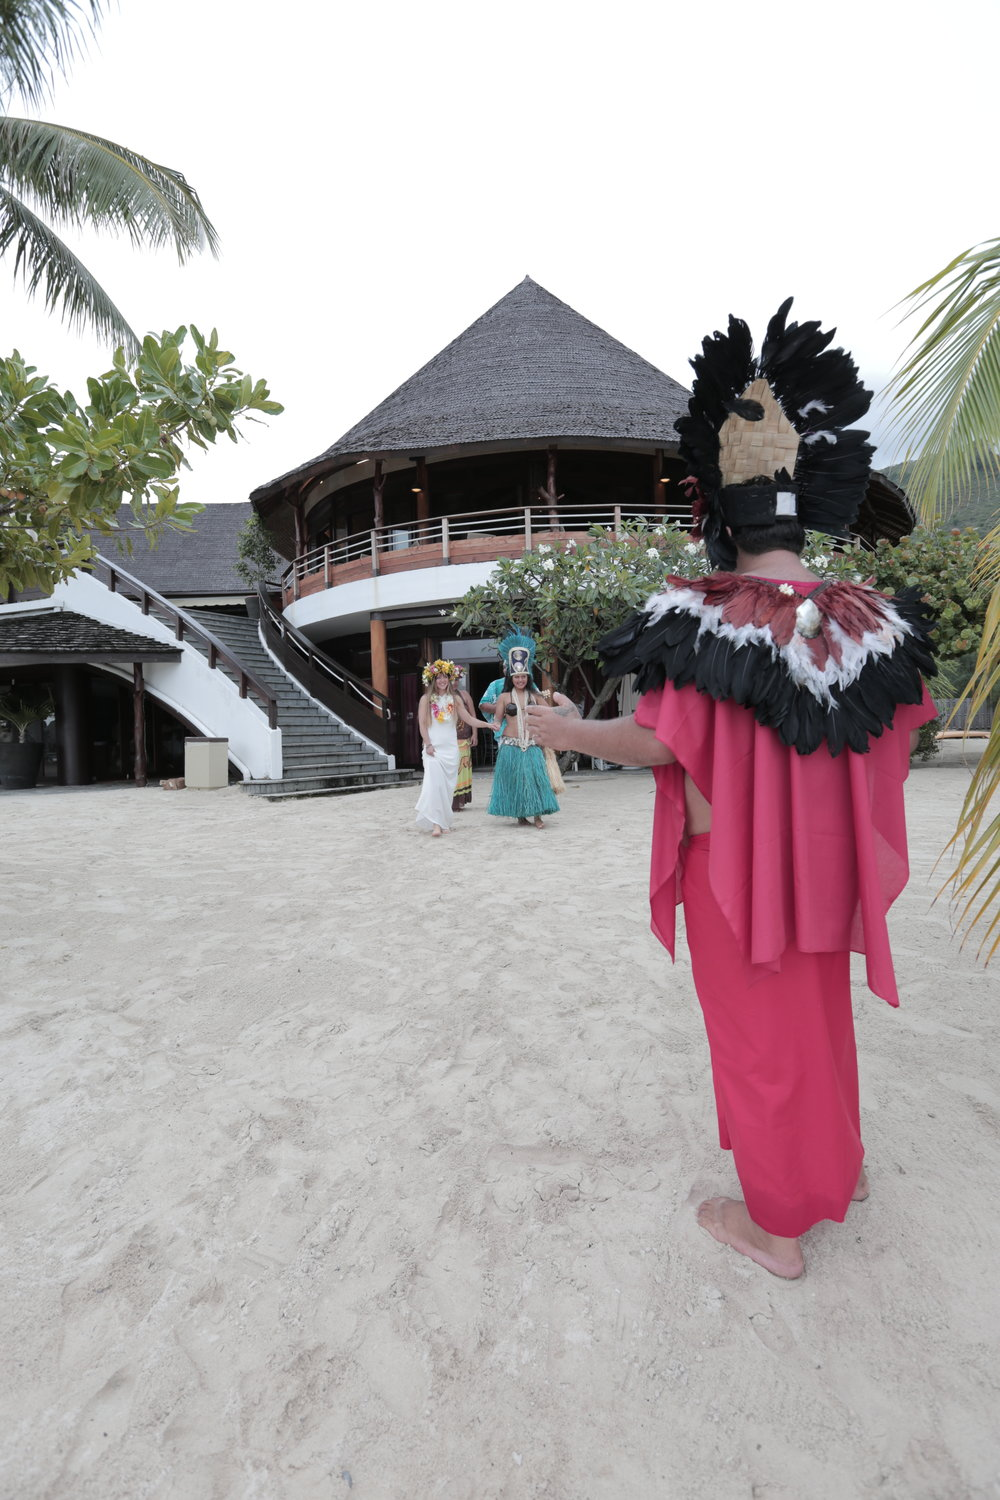 The Tahitian priest welcomes me to the beach.